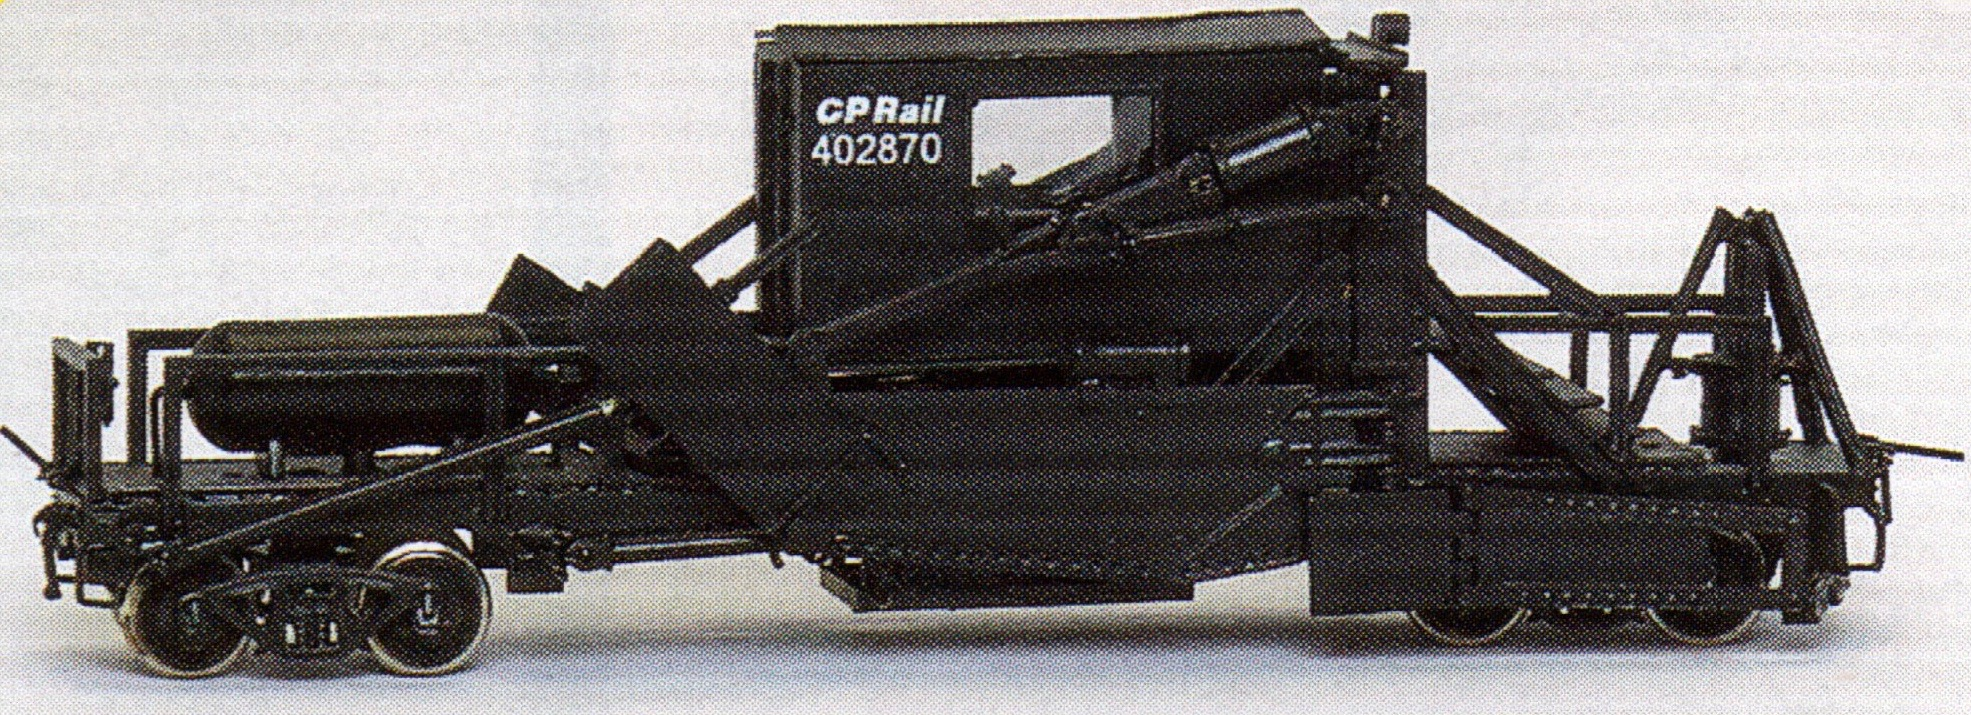 N Scale - Overland Models - 2804C - MOW, Jordan Spreader,Low Blade, Ballast - Canadian Pacific - 402870